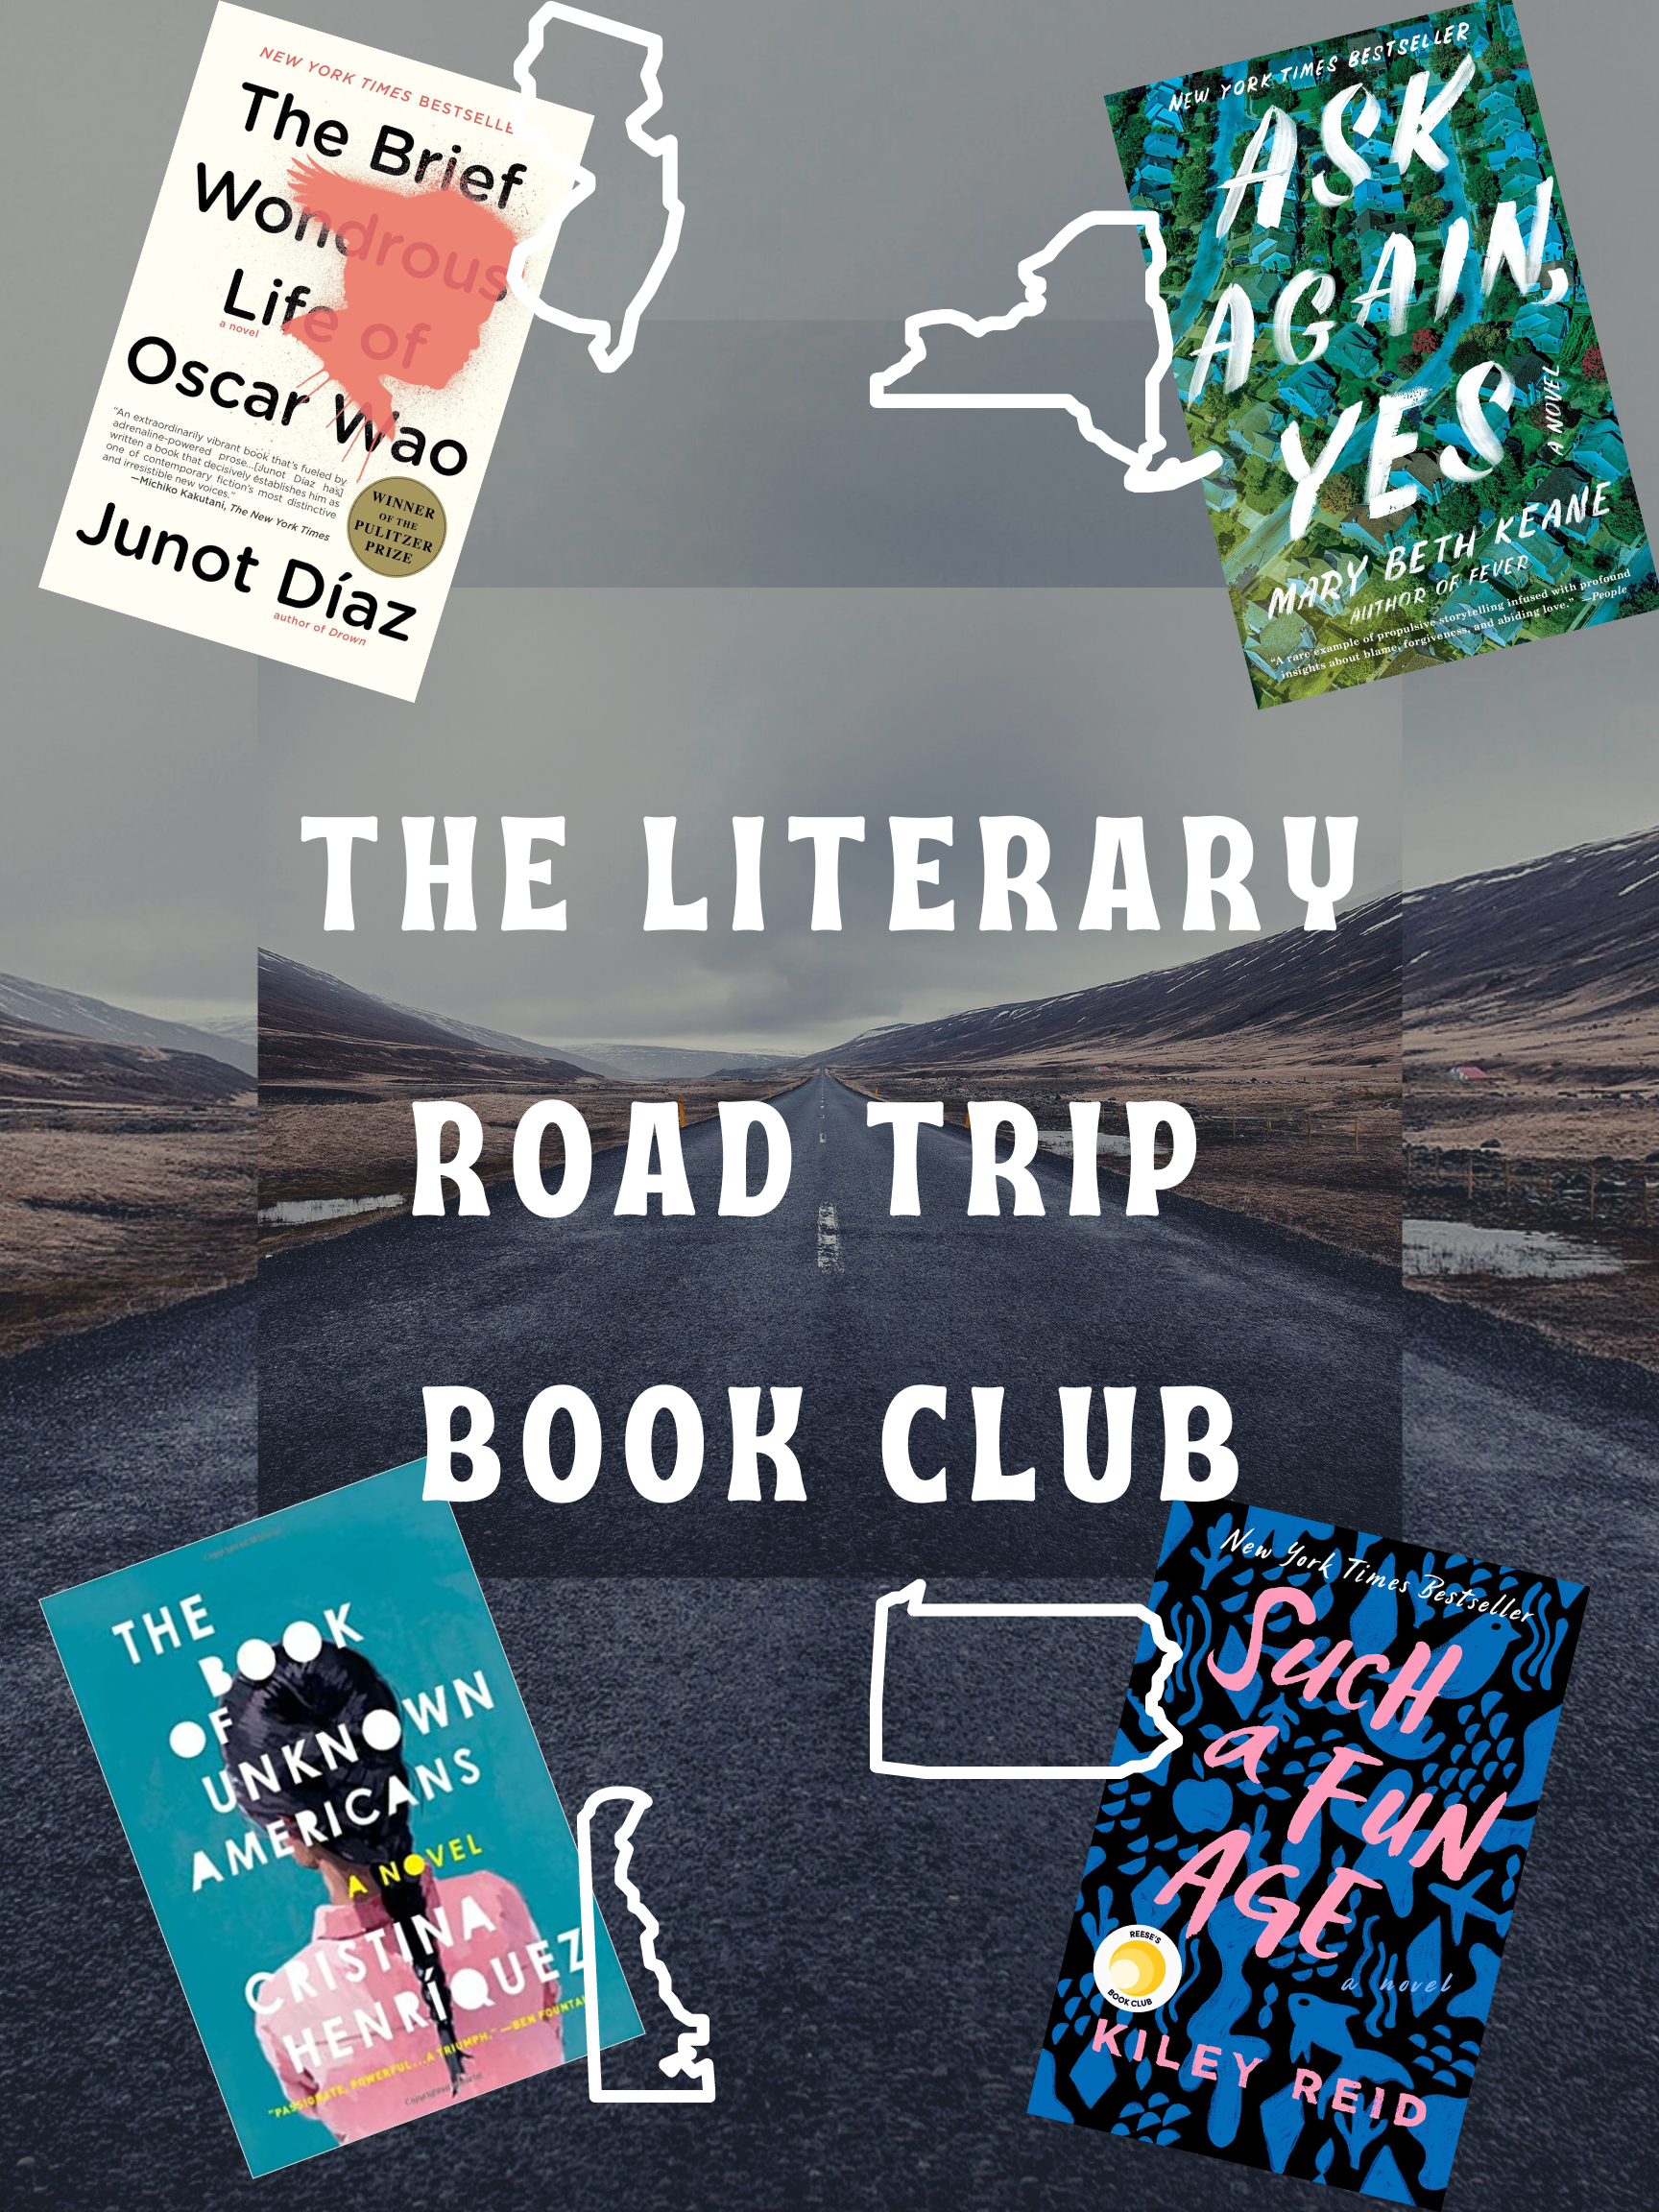 The Literary Road Trip Book Club - Image of a Long Road - Book Covers shown: Cristina Henriquez' The Book of Unknown Americans, Junot Diaz' The Brief Wondrous Life of Oscar Wao,  Mary Beth Keane's Ask Again, Yes, and Kiley Reid's Such a Fun Age